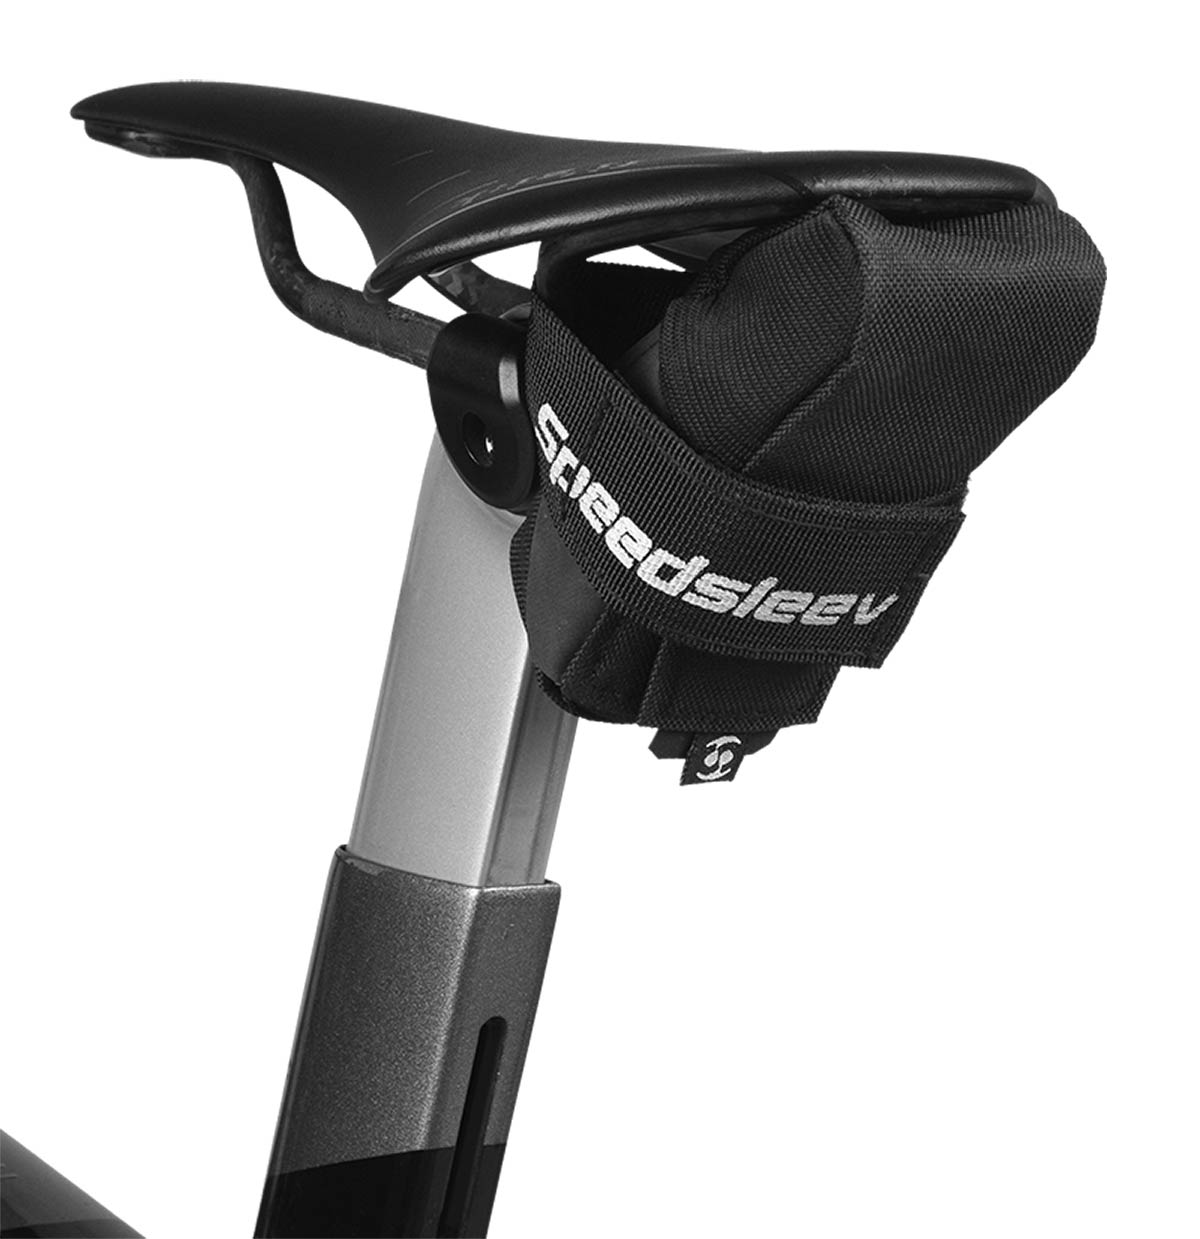 speedsleev otf gravel saddle pack carries tubeless repair kit waterproof